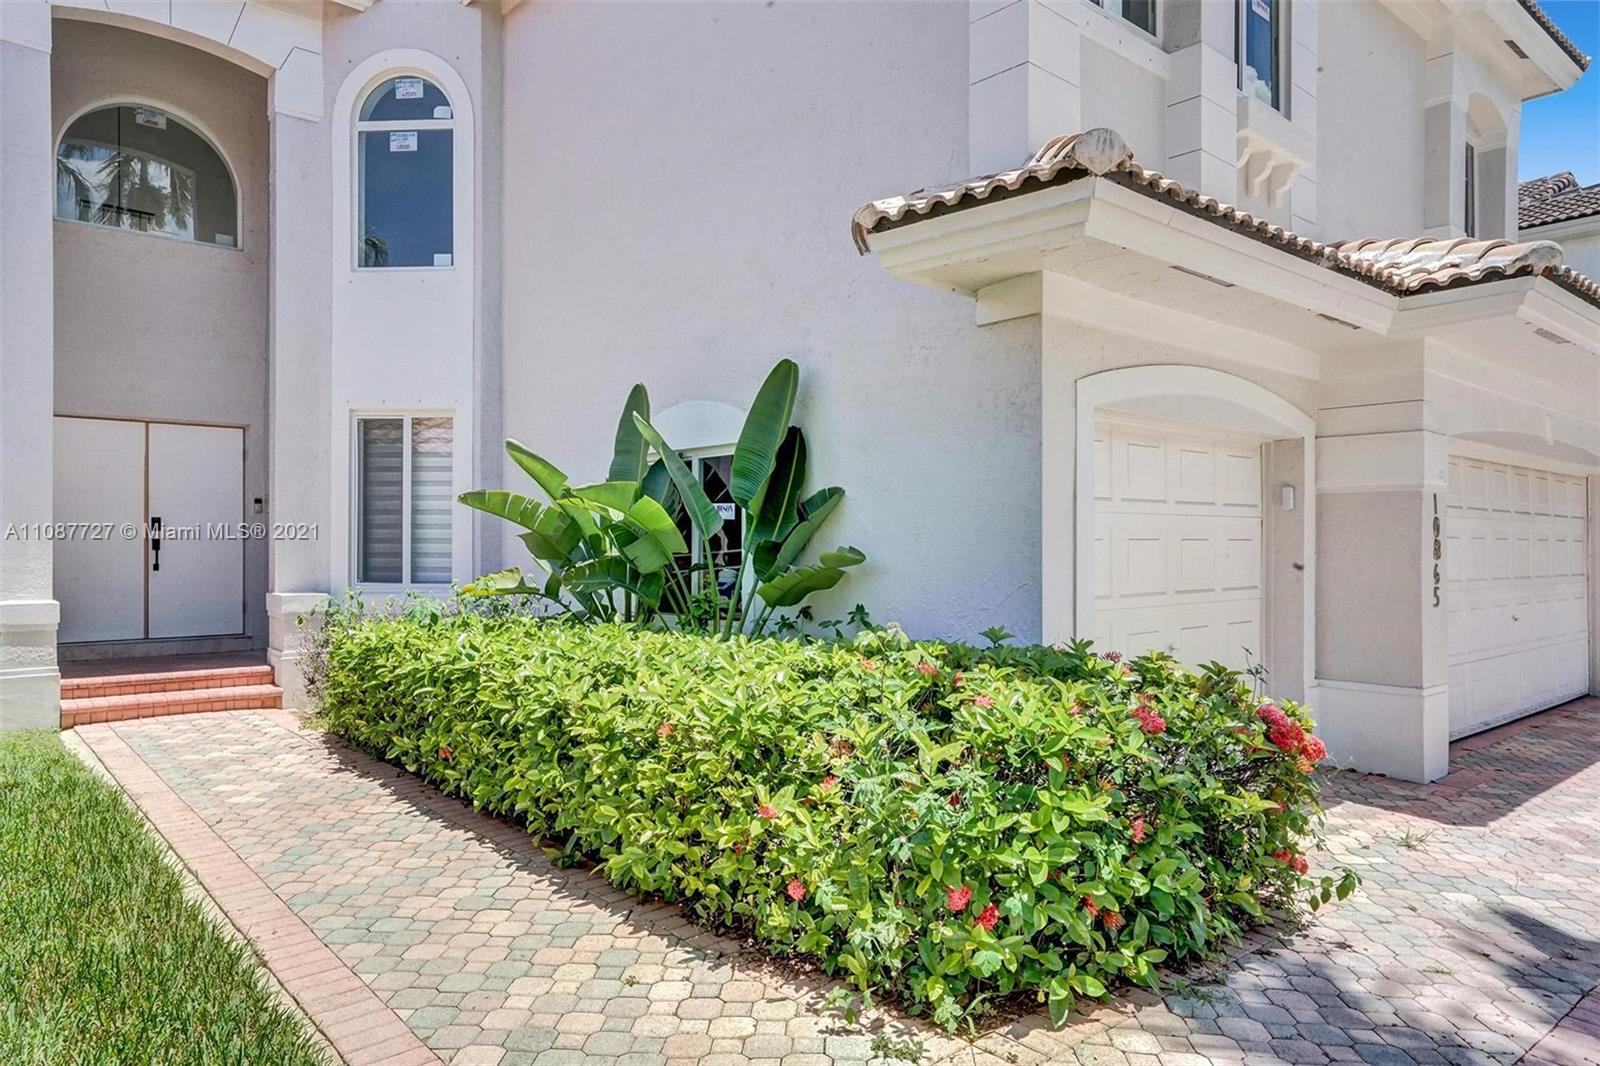 Doral Isles St Croix - 10865 NW 73rd Ter, Doral, FL 33178